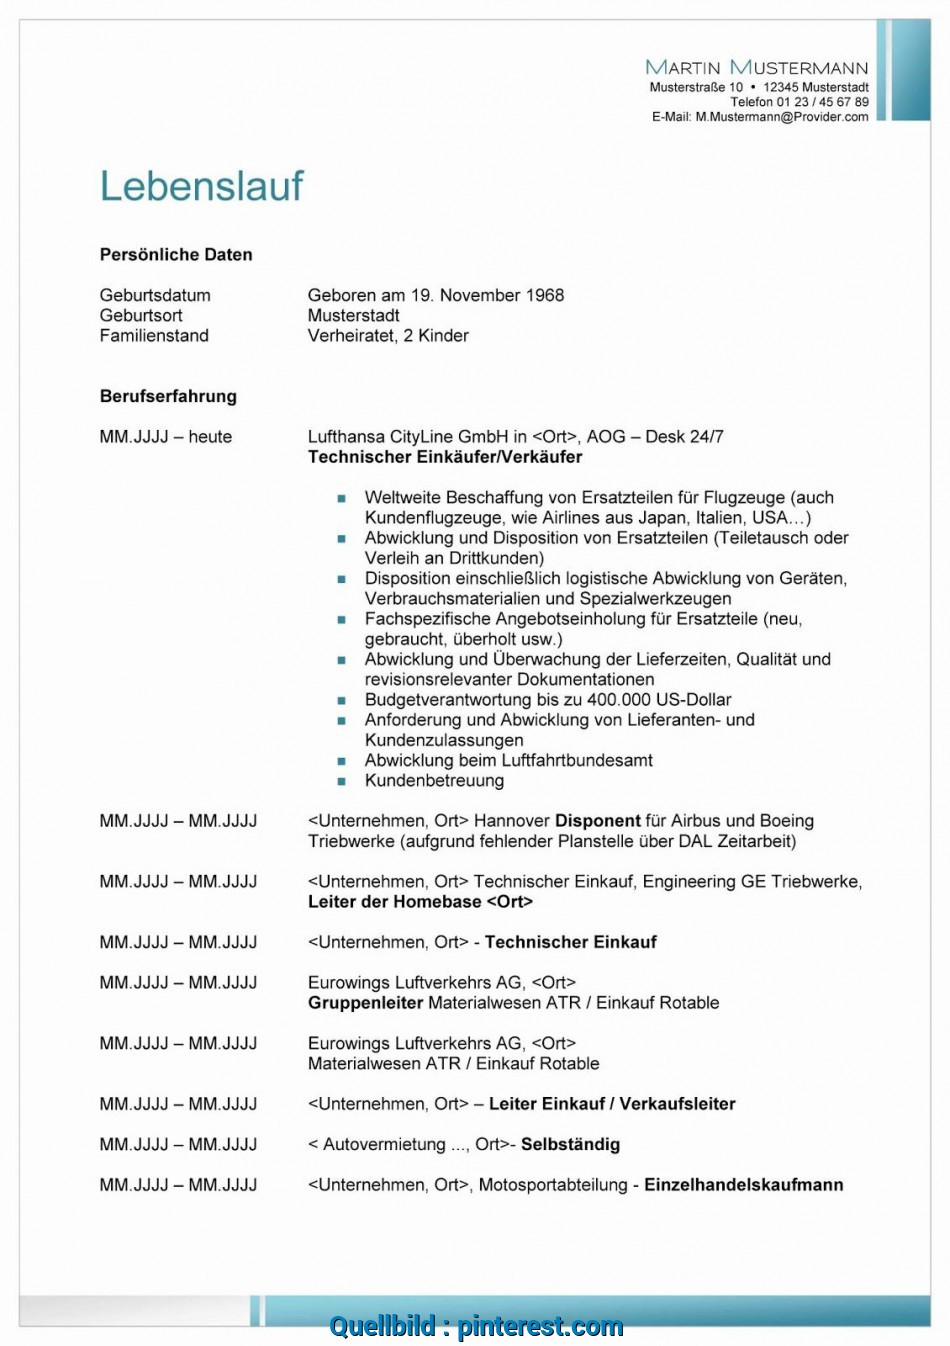 Akzeptabel Journalist Lebenslauf 2019, Resume Templates --CLICK PICTURE, MORE-- # Lebenslauf #Vorlagen #Resume #Resumeexamples #Resumetemplates #Curriculumvitae